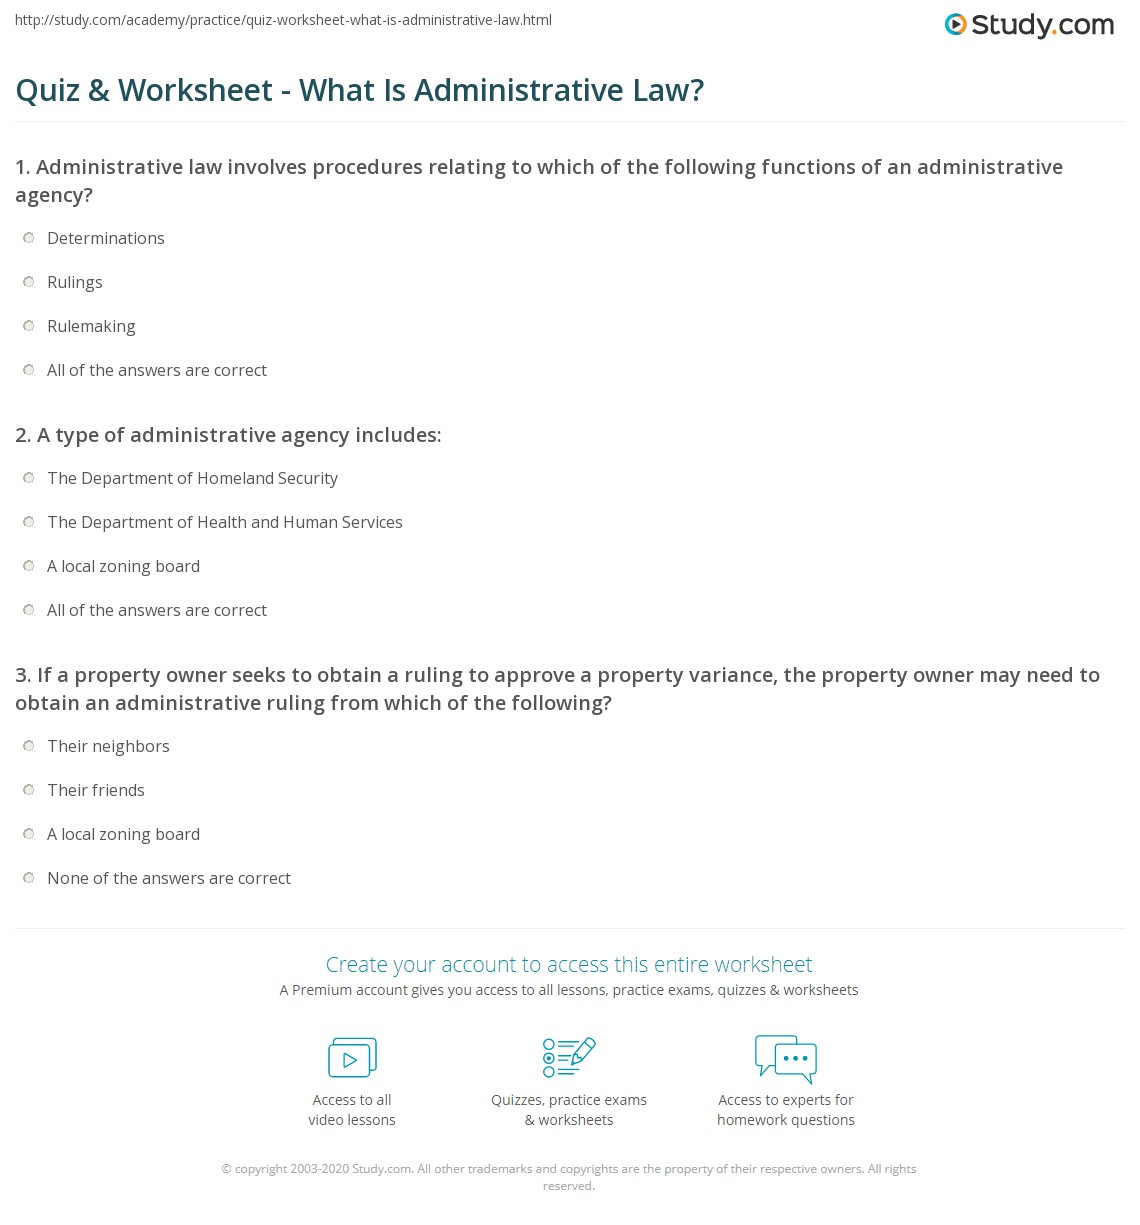 Administrative Law: Quiz & Worksheet - What Is Administrative Law?